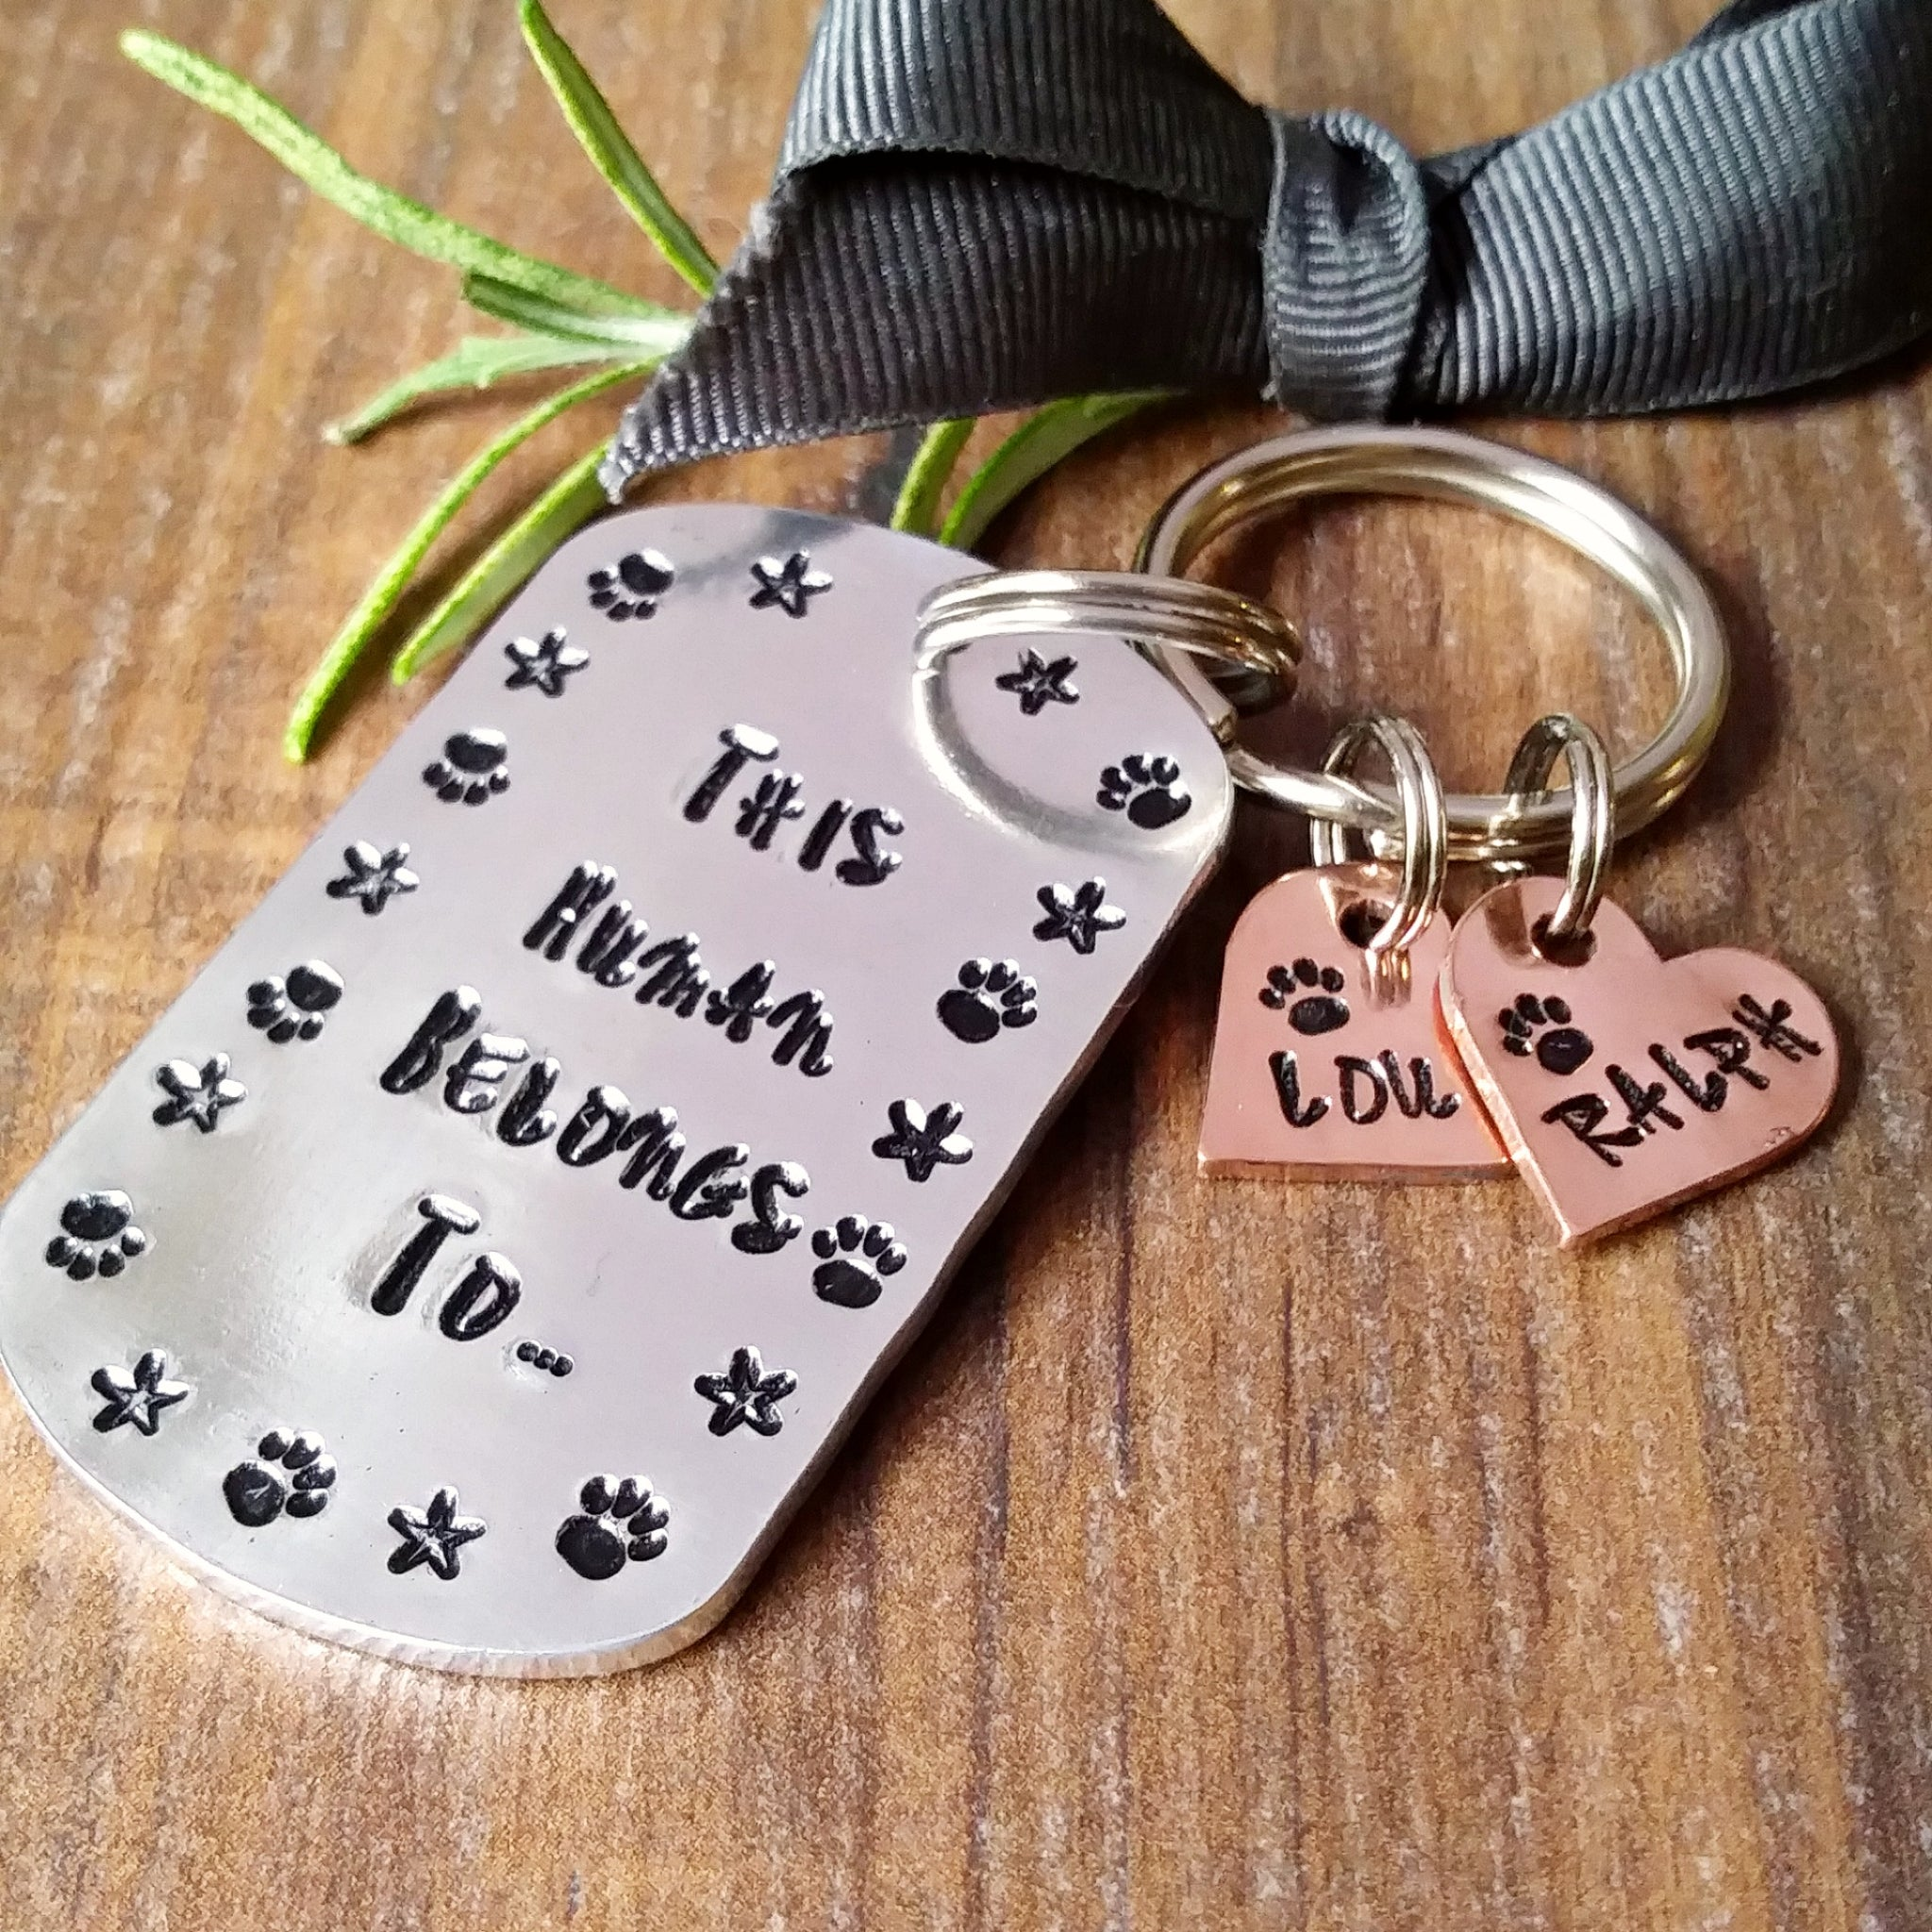 Pet Owner Keyring | This Human Belongs To | Dog Lover Personalised Gifts-Keyring-Sparkle & Dot Designs